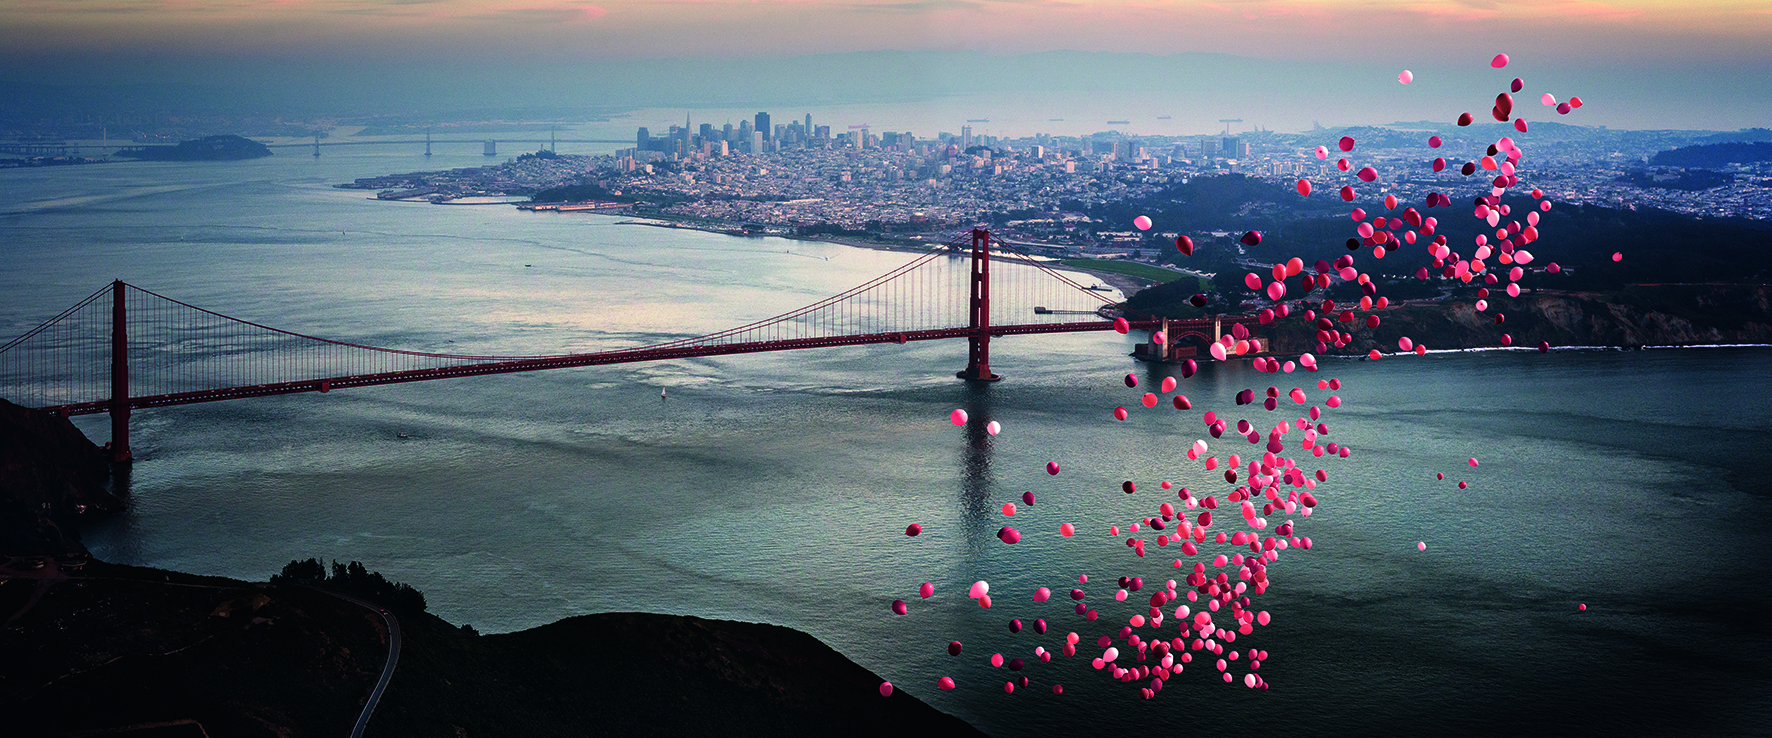 BALLONS OVER SAN FRANCISCO, 2016   Photo © 2016 David Drebin. All rights reserved.   www.daviddrebin.com